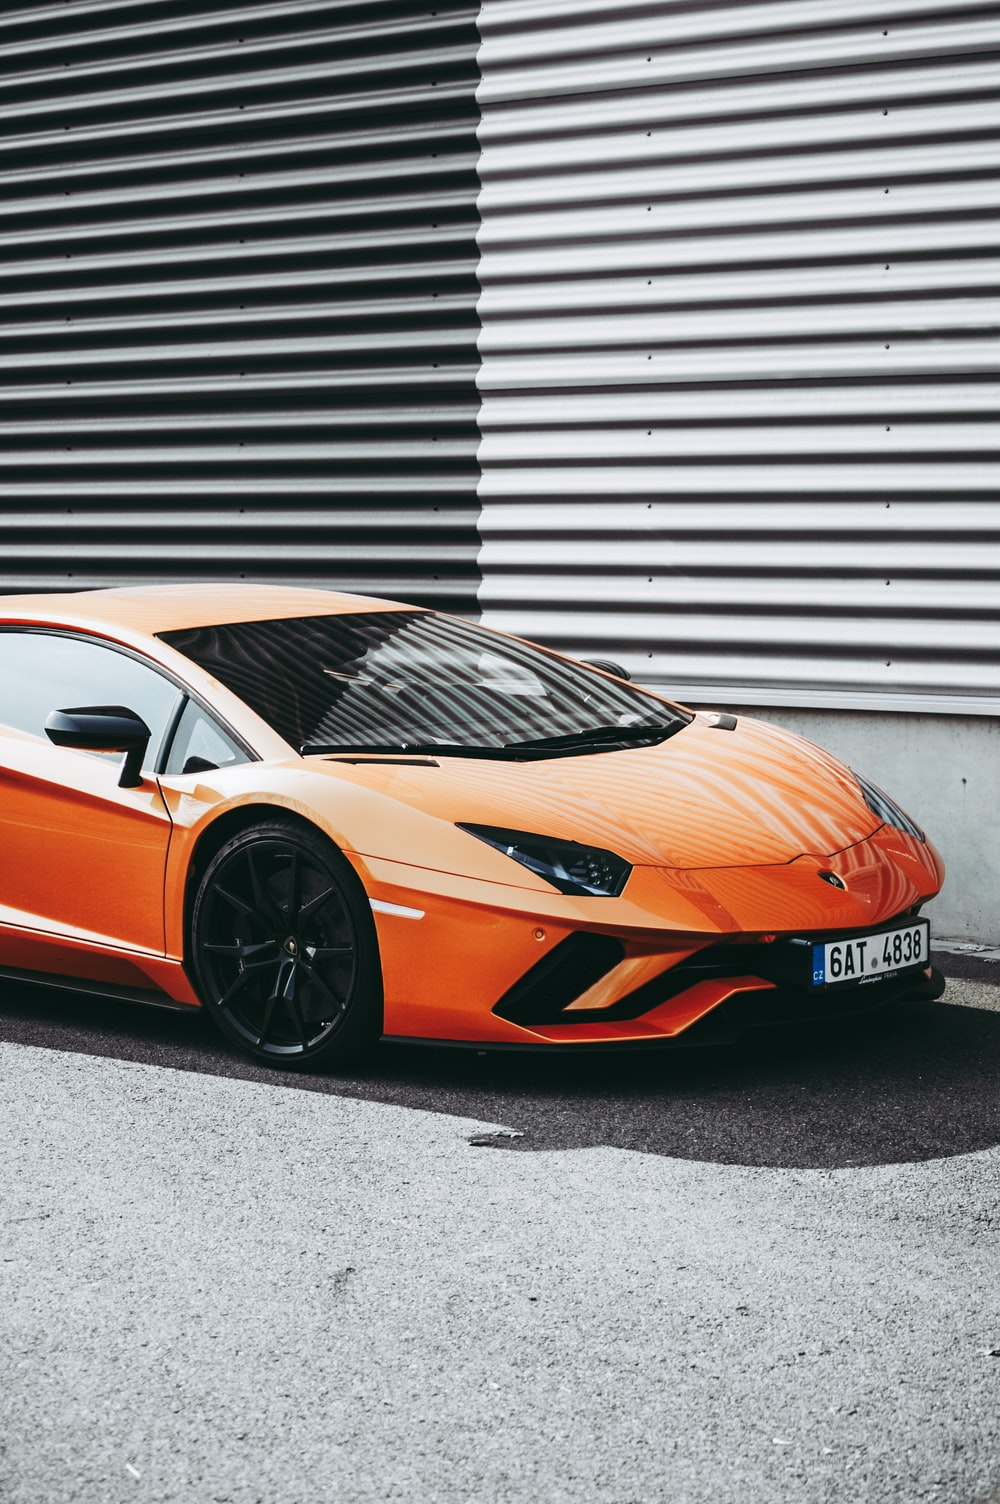 orange Lamborghini sports coupe parked near corrugated wall at daytime